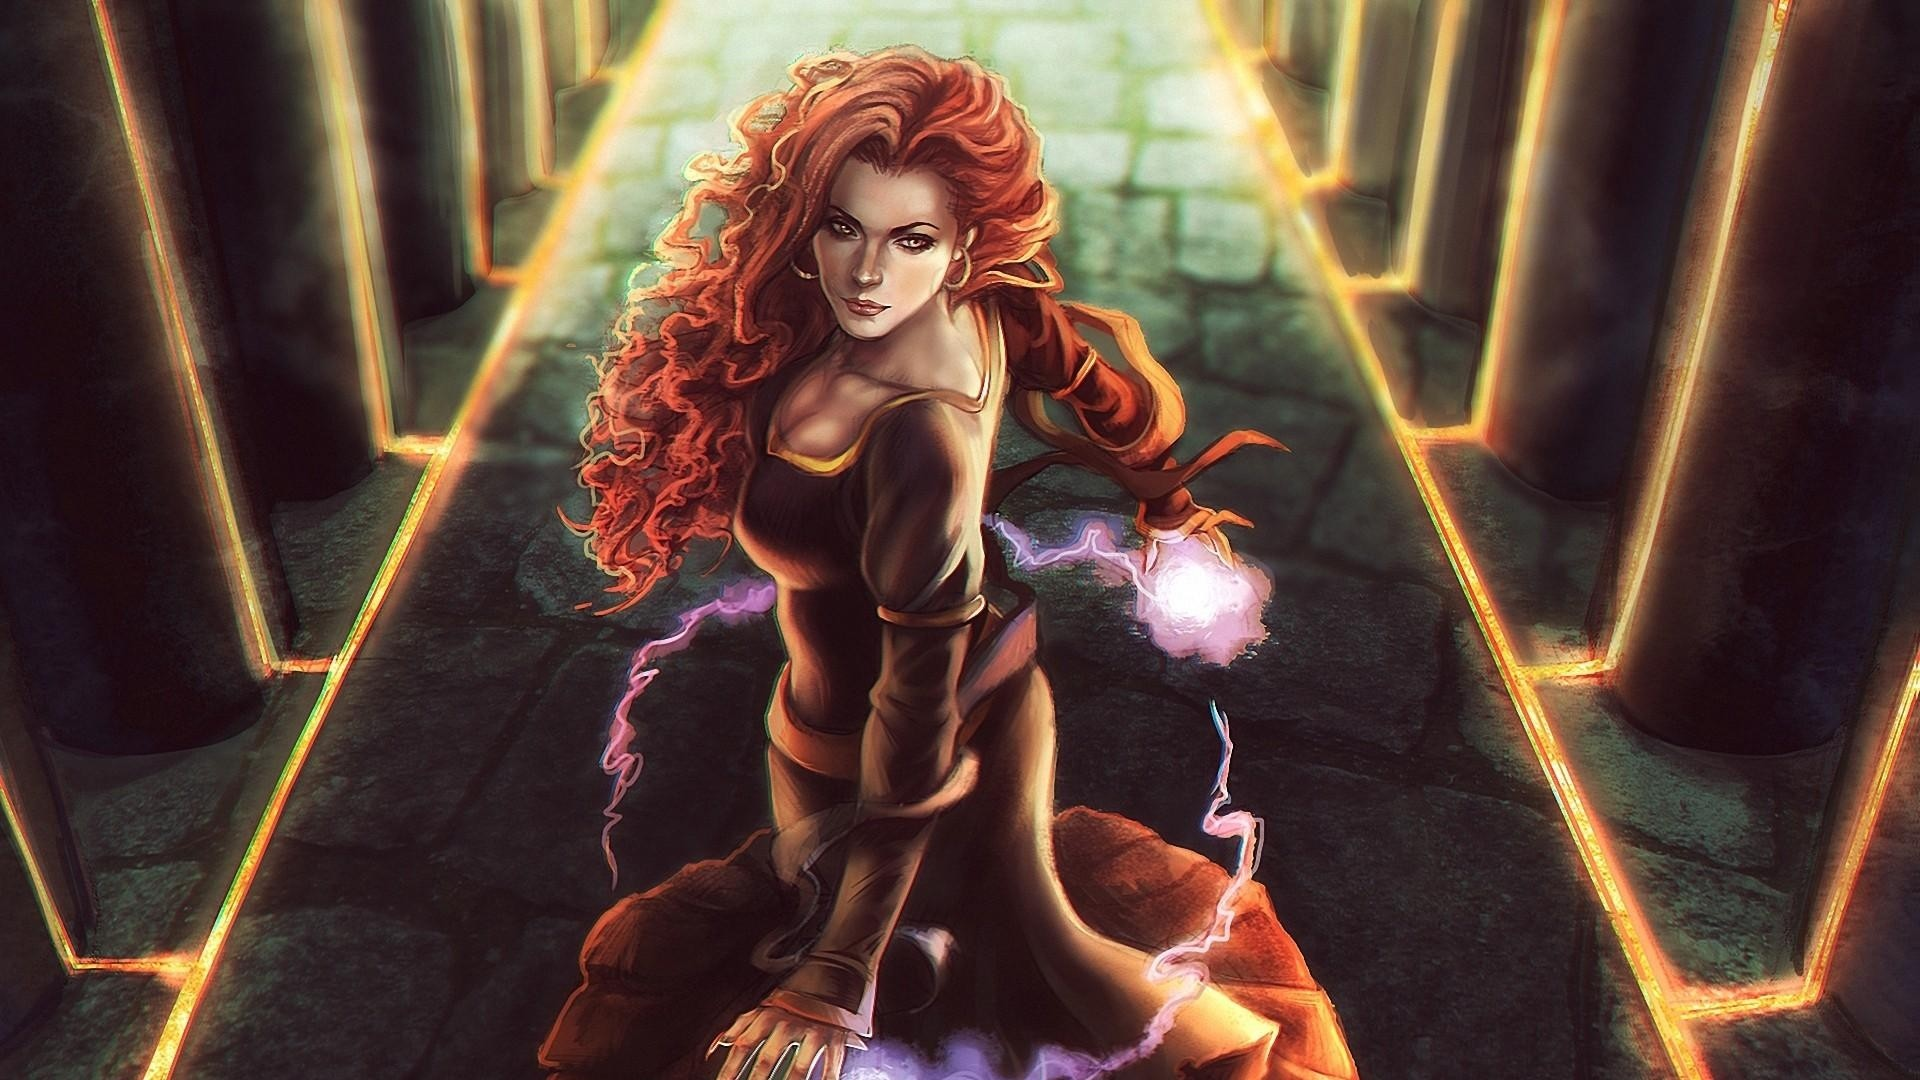 Download now full hd wallpaper triss merigold red head luxury spell .